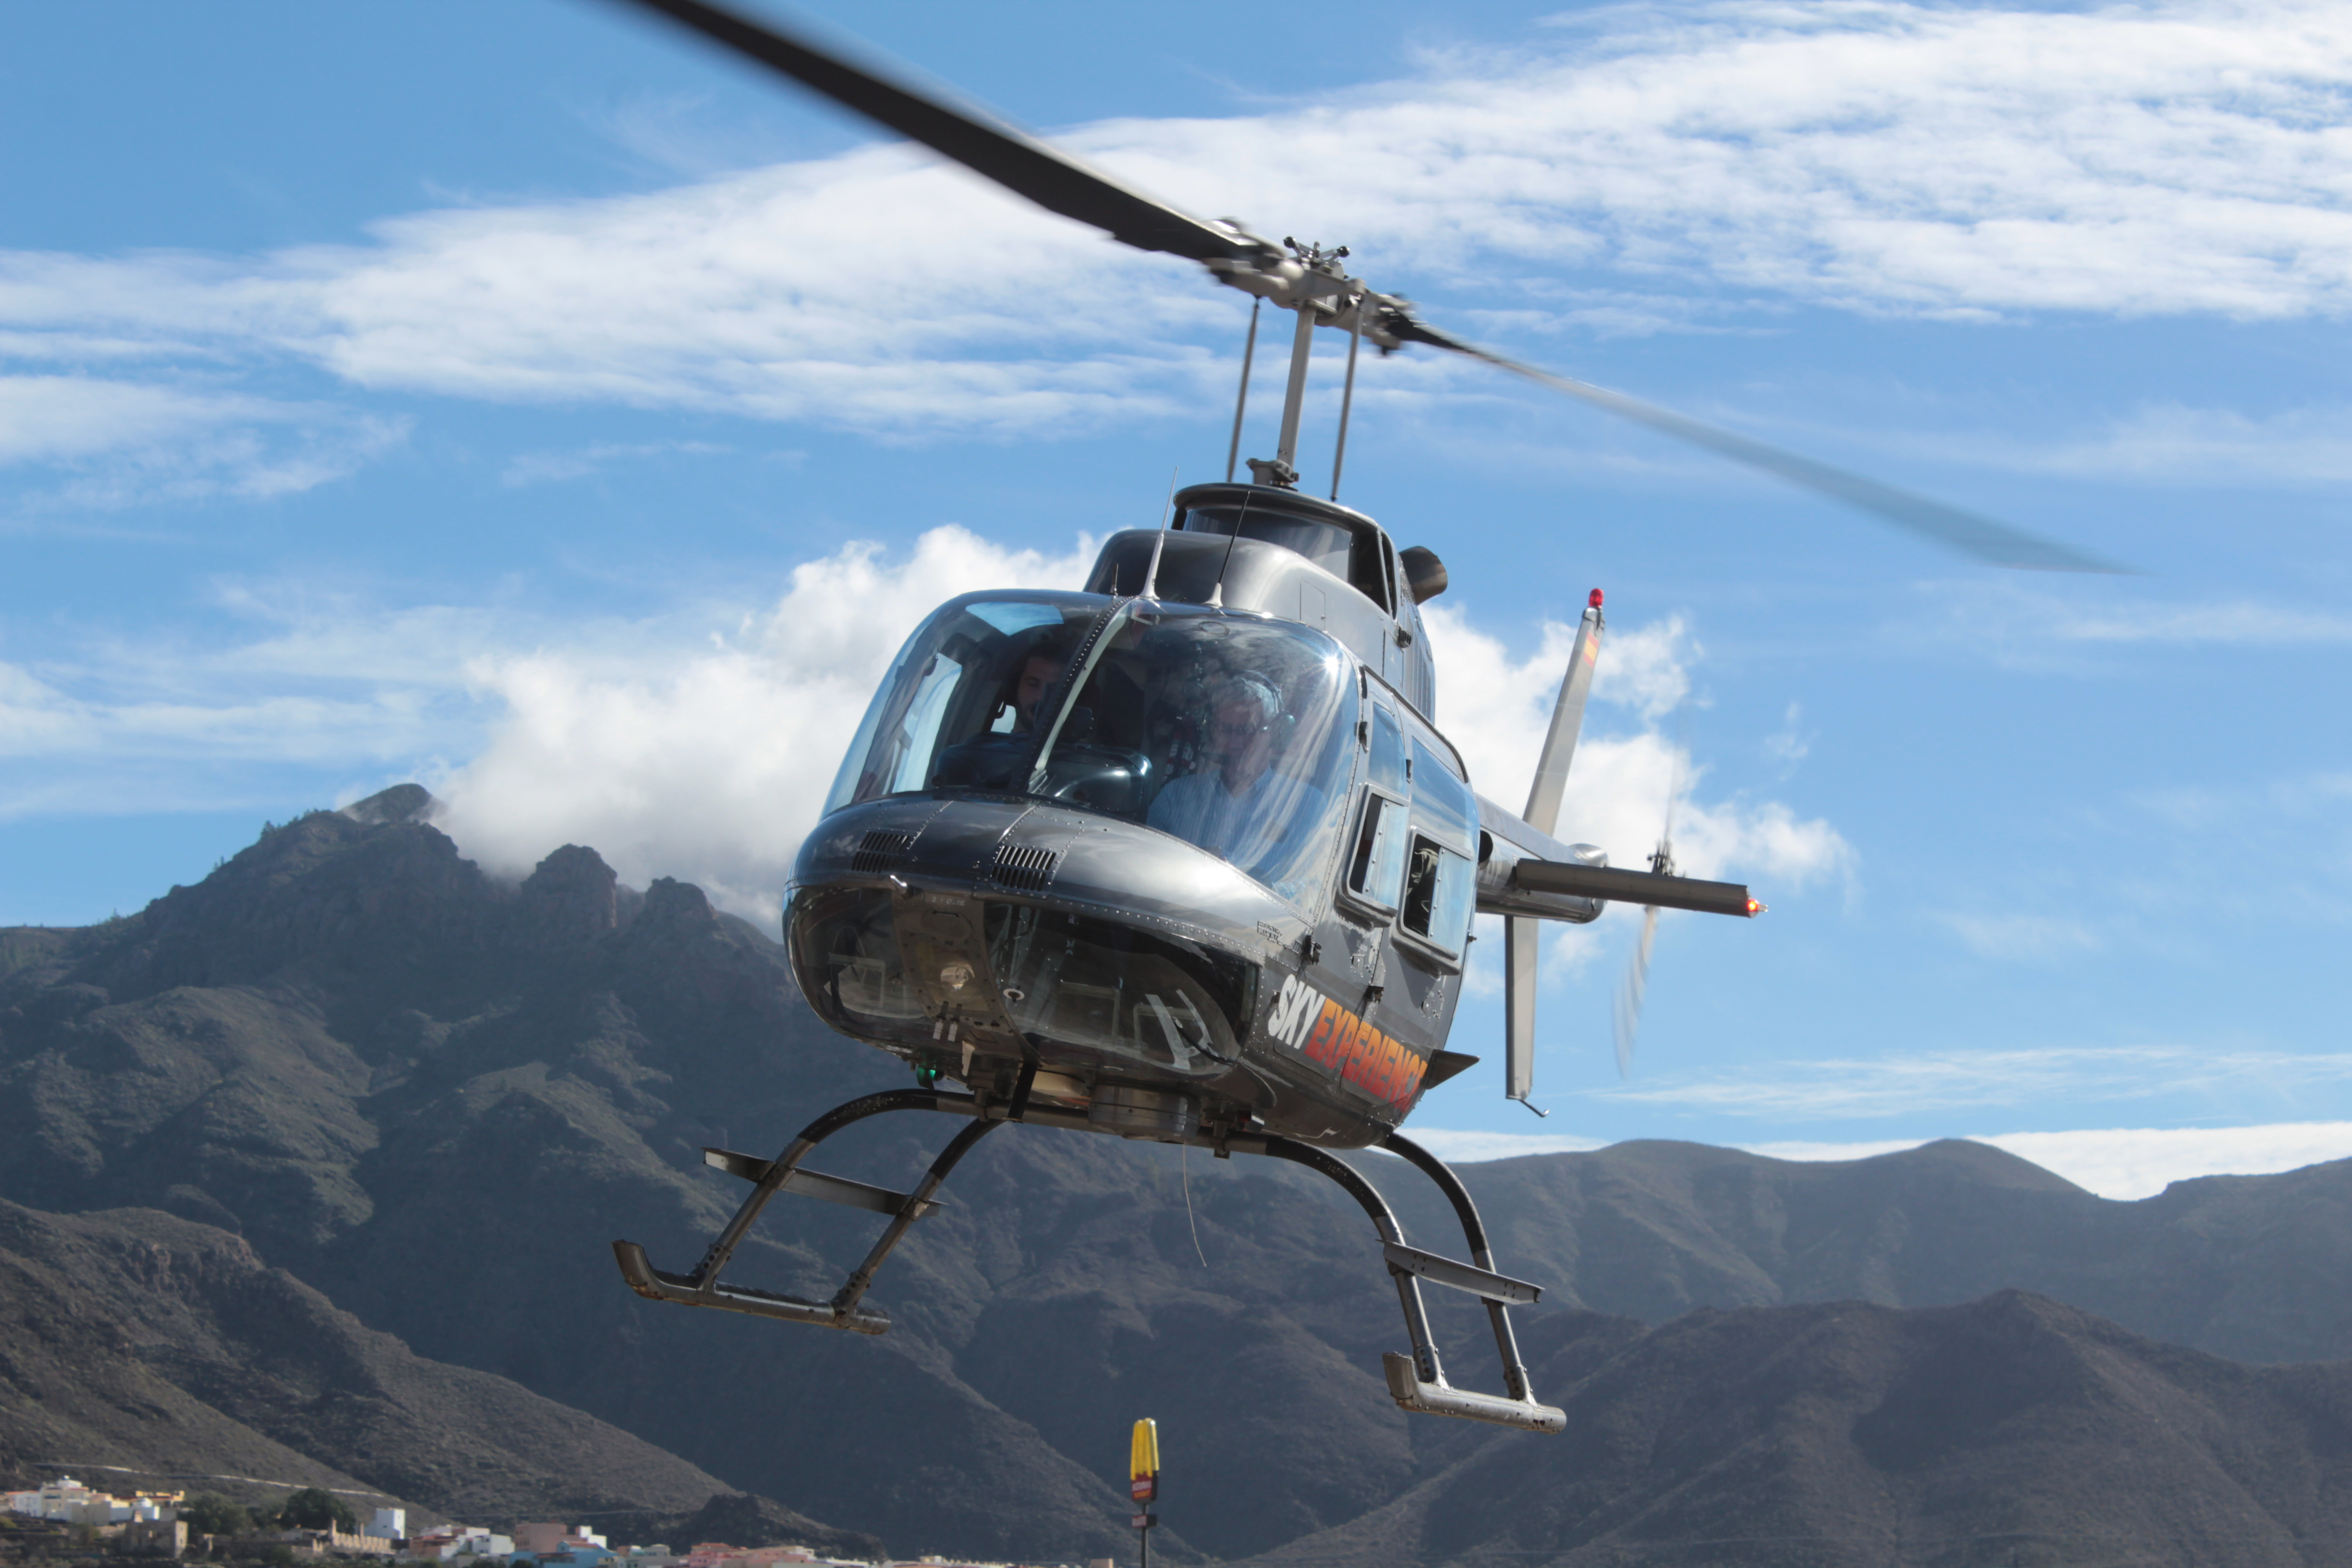 Helicopter flight over the Tenerife coast and ravines